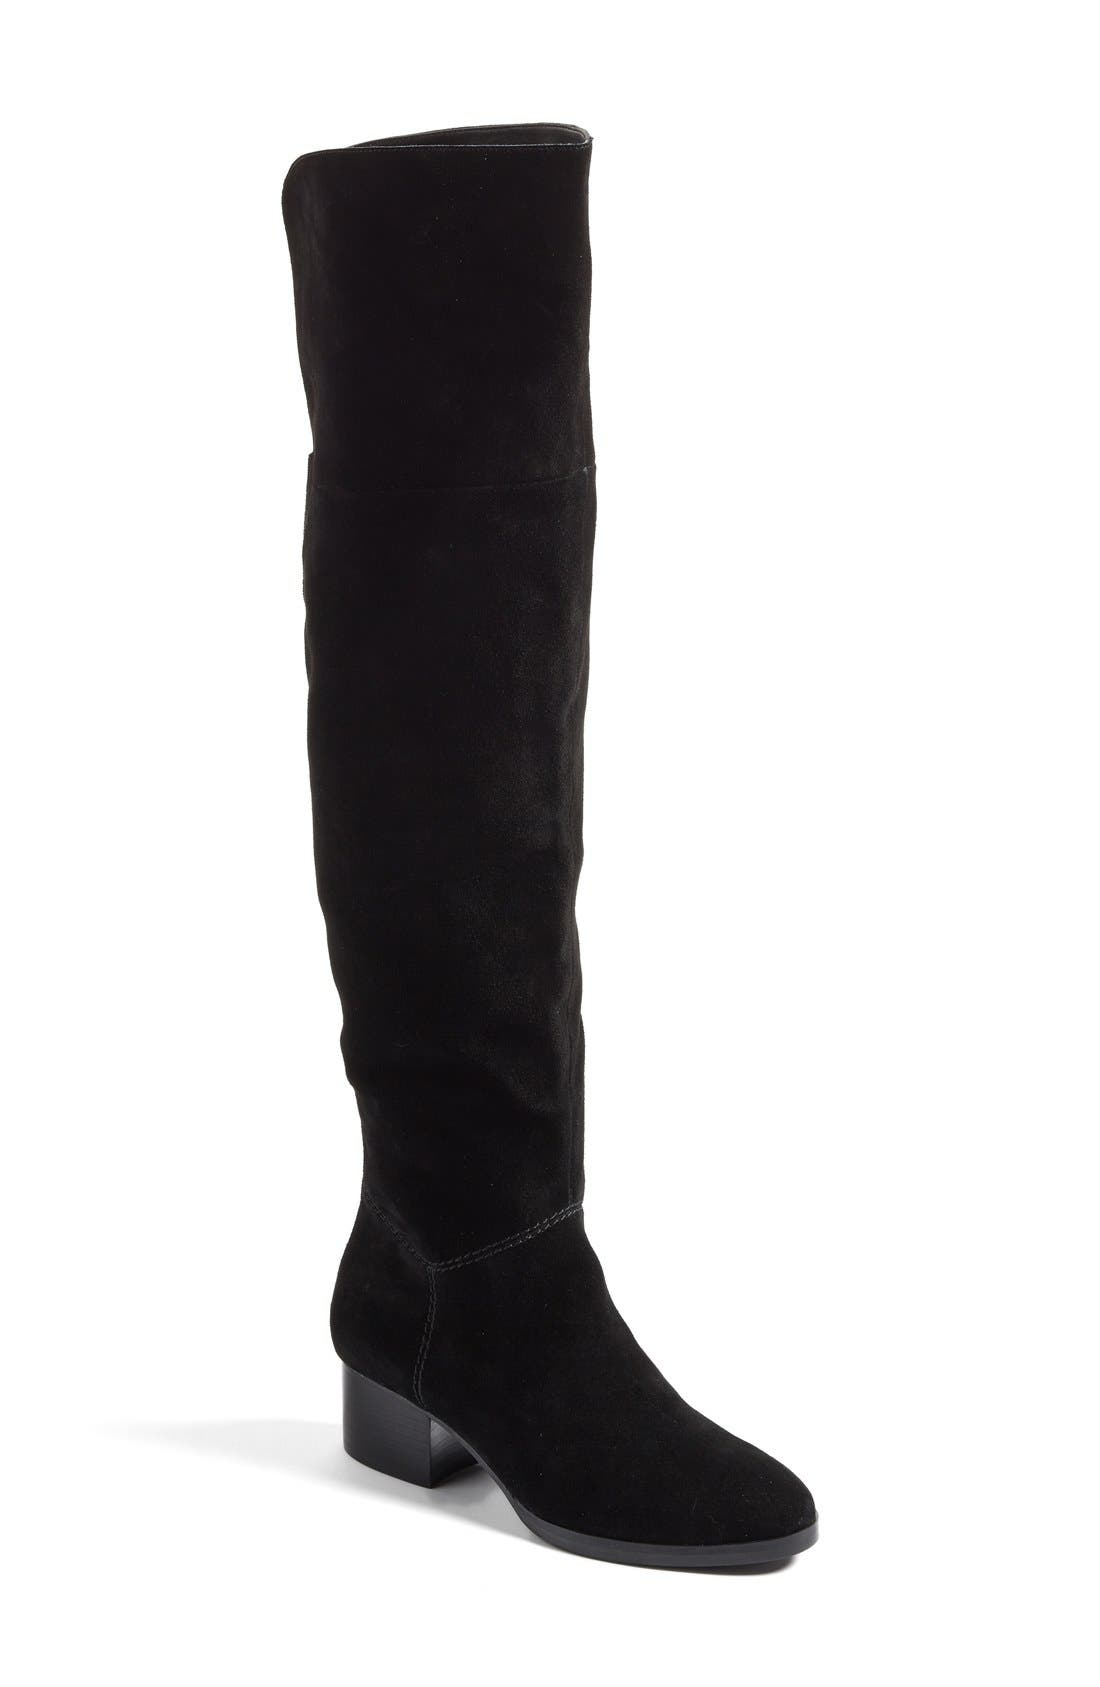 Tessie Tall Boot,                         Main,                         color, Black / Black Suede